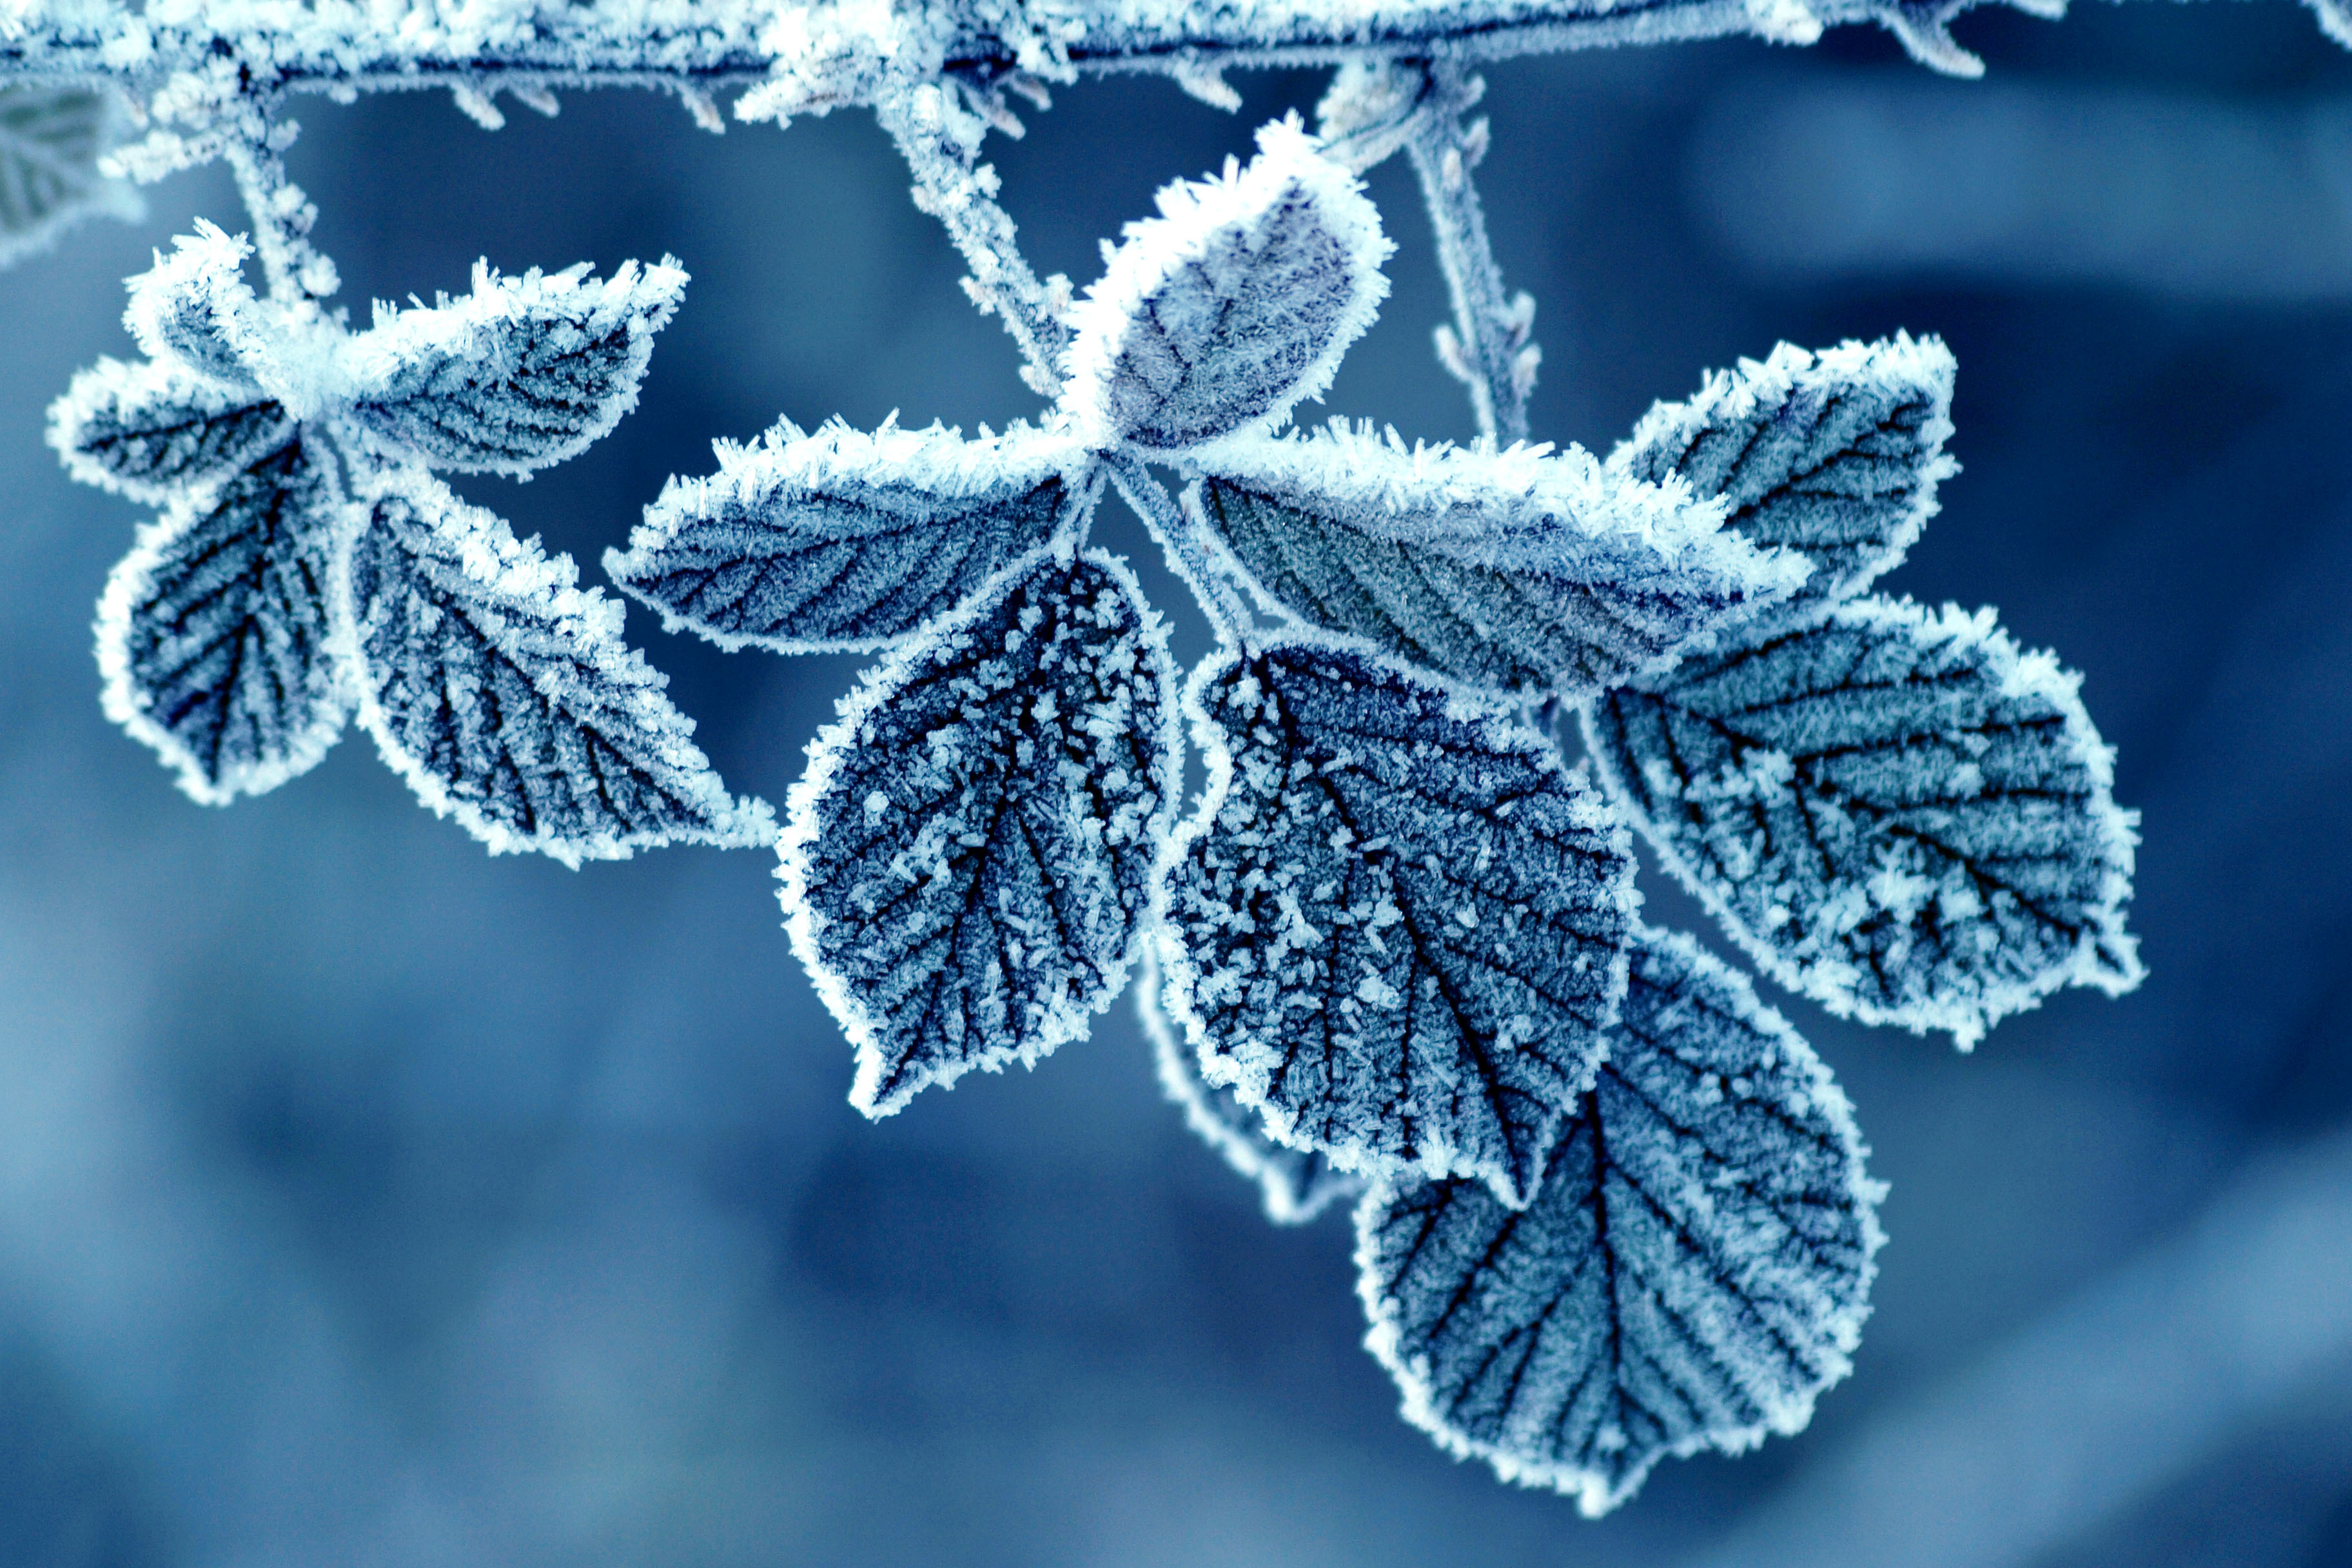 escarcha-rose-frost-frost-pattern-winter-morning